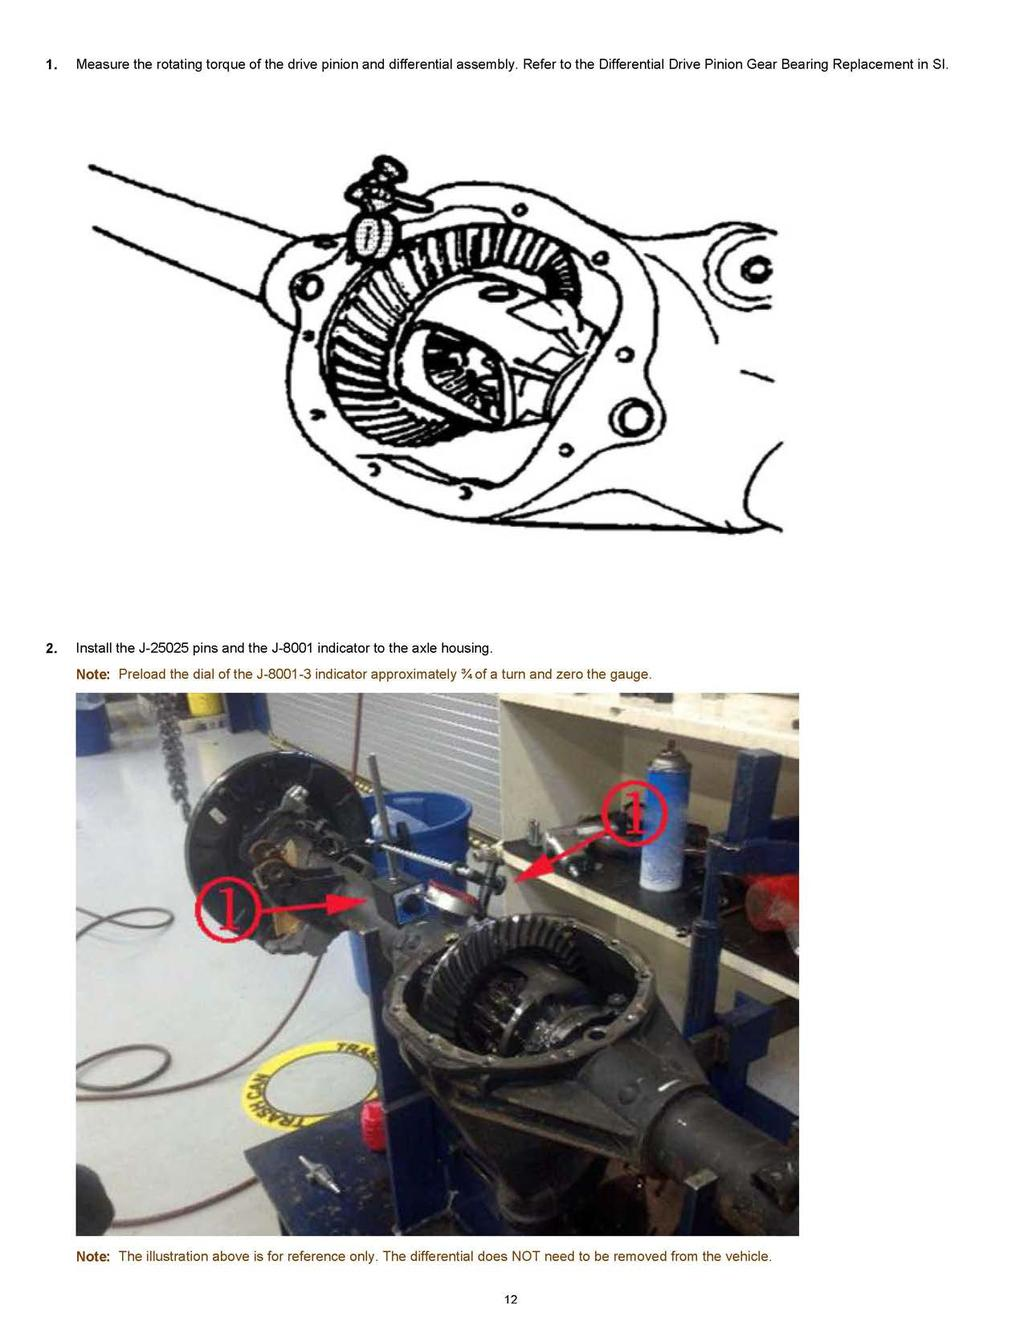 1. Measure the rotating torque of the drive pinion and differential assembly. Refer to the Differential Drive Pinion Gear Bearing Replacement in SI. 2.